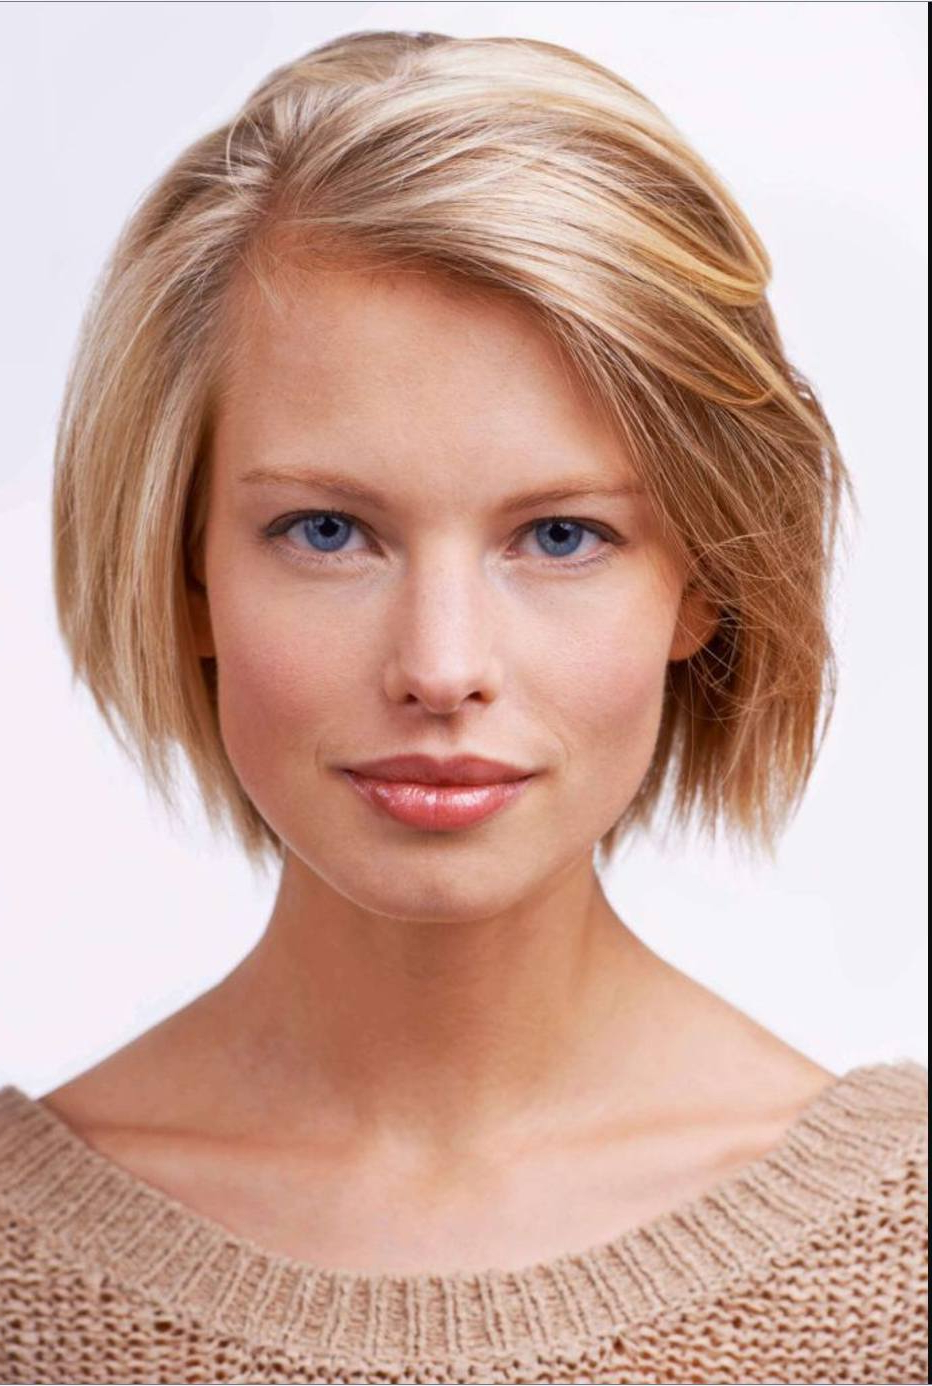 34 Best Red And Blonde Hairstyles And Haircuts For 2019 Intended For Well Known Strawberry Blonde Bob Hairstyles With Flipped Ends (View 3 of 20)